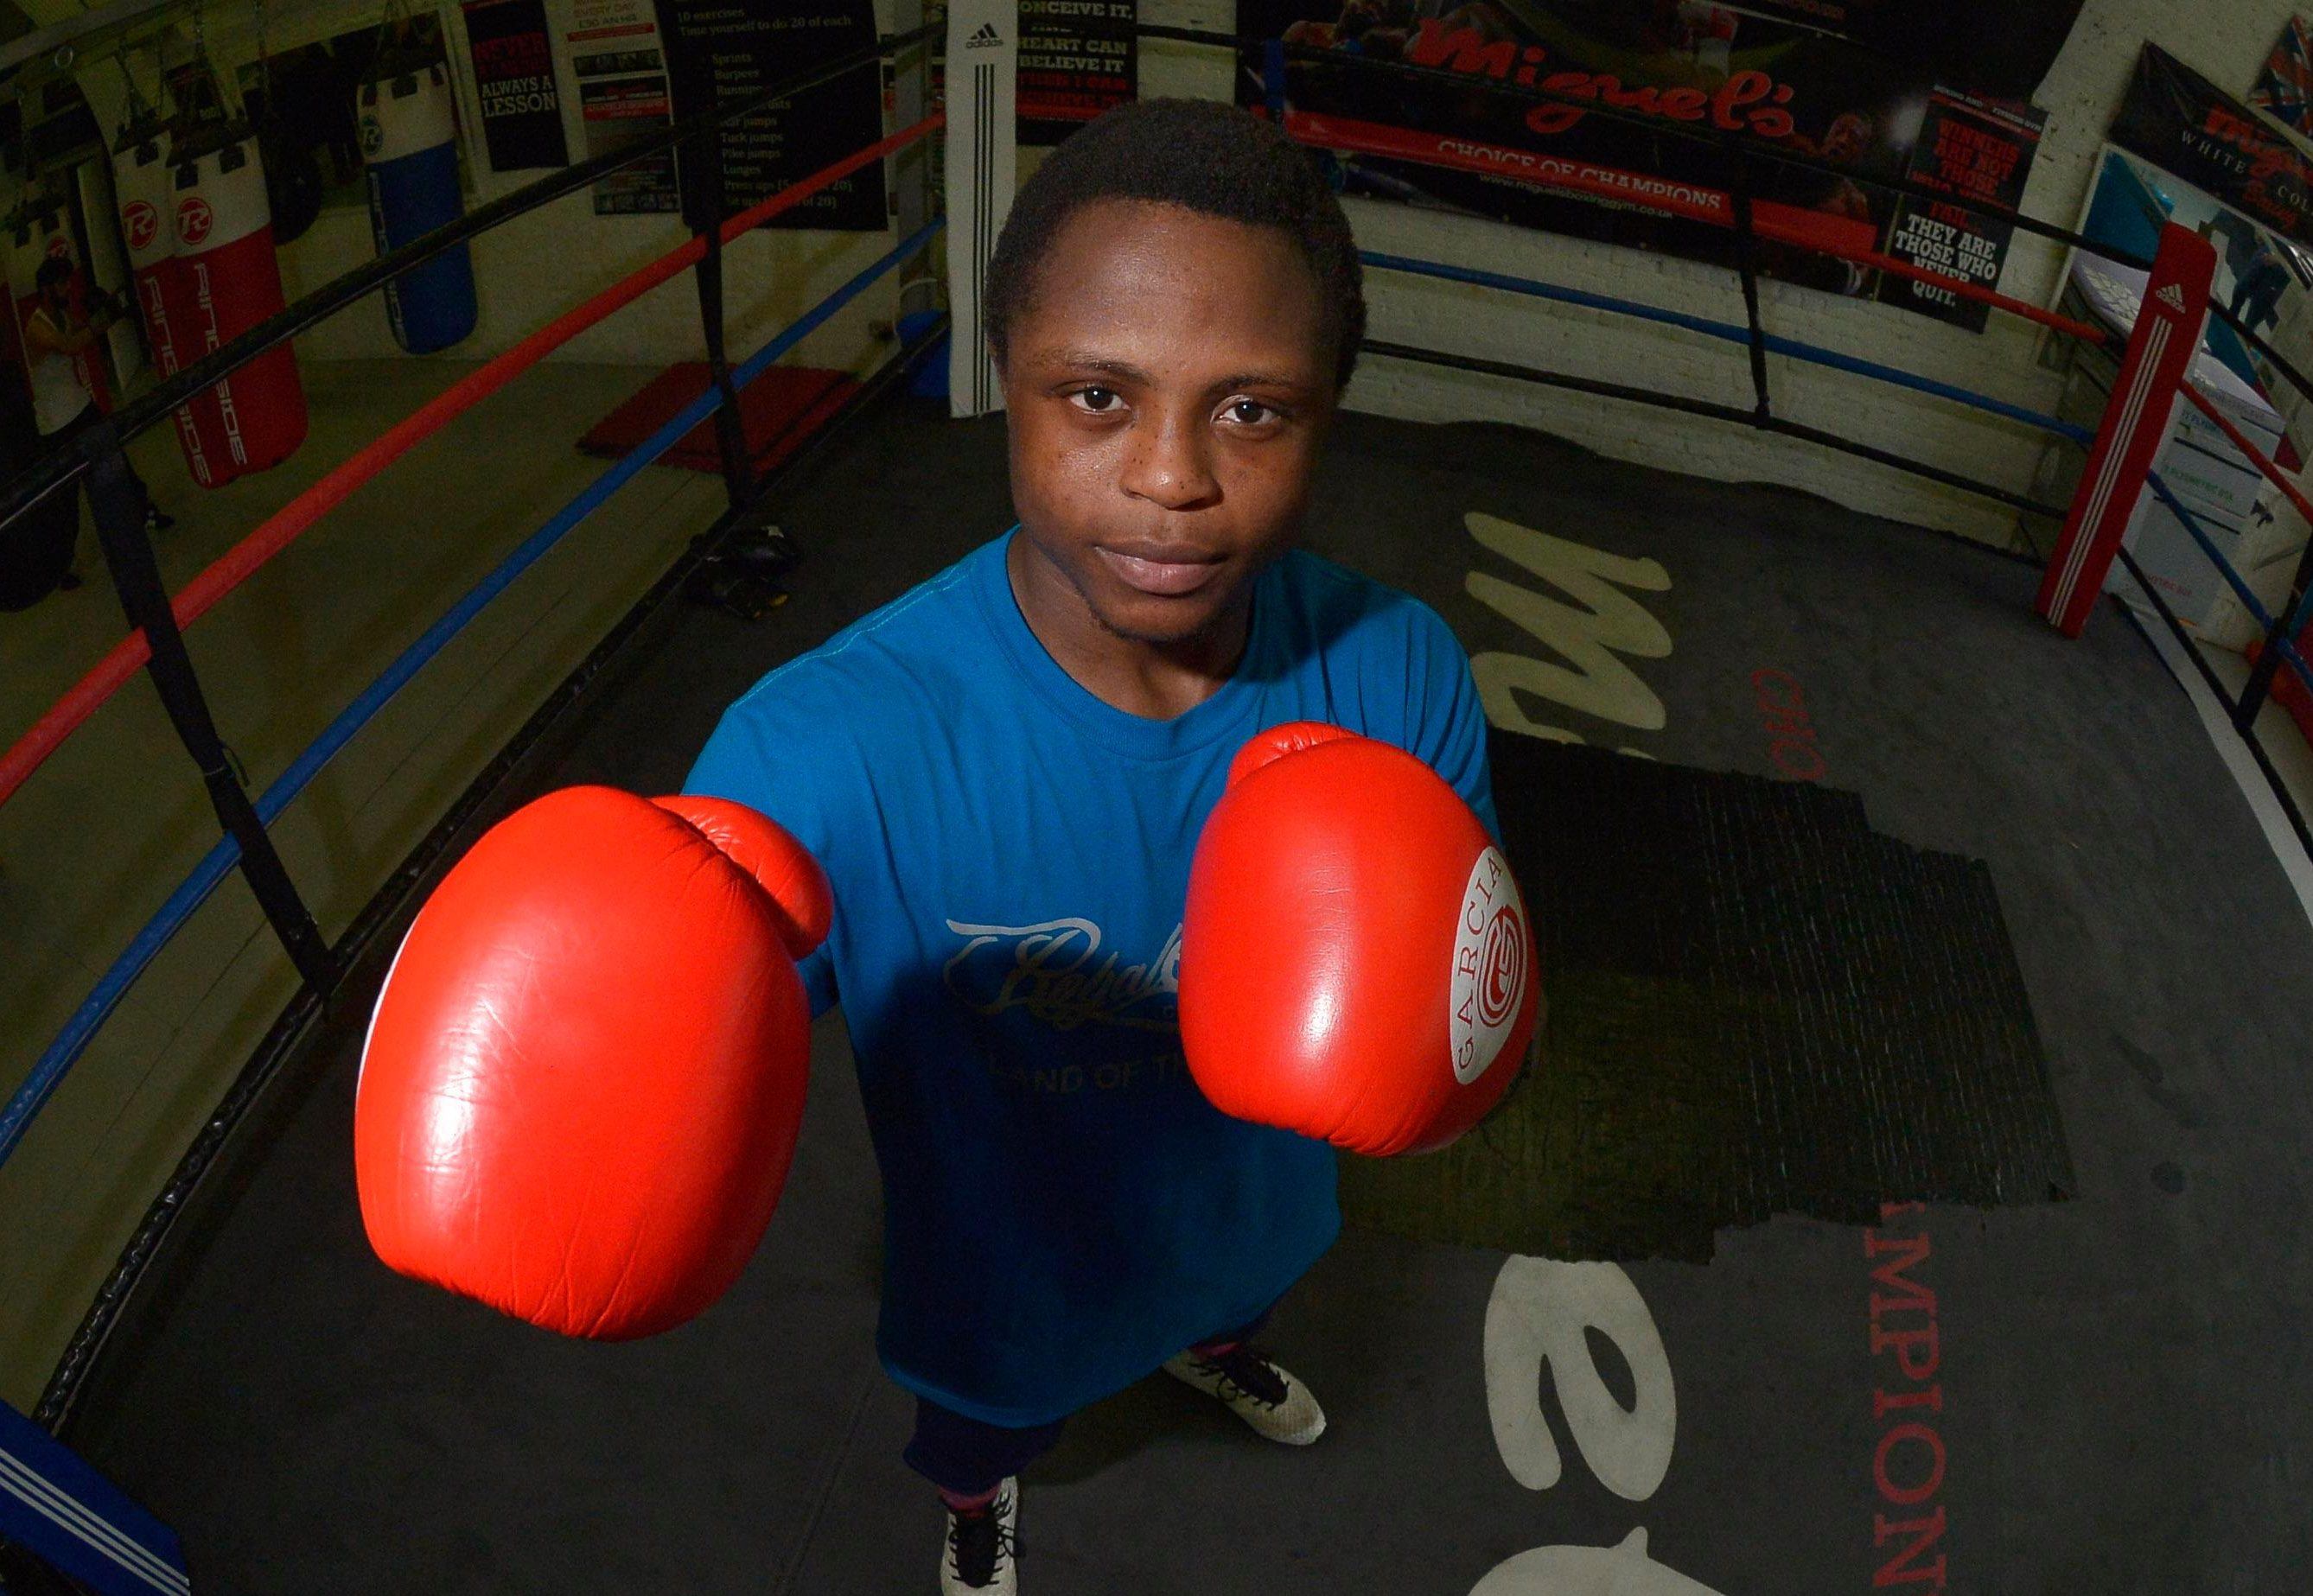 Isaac Dogboe won the WBO super-bantamweight title in April and makes his first defence on August 25